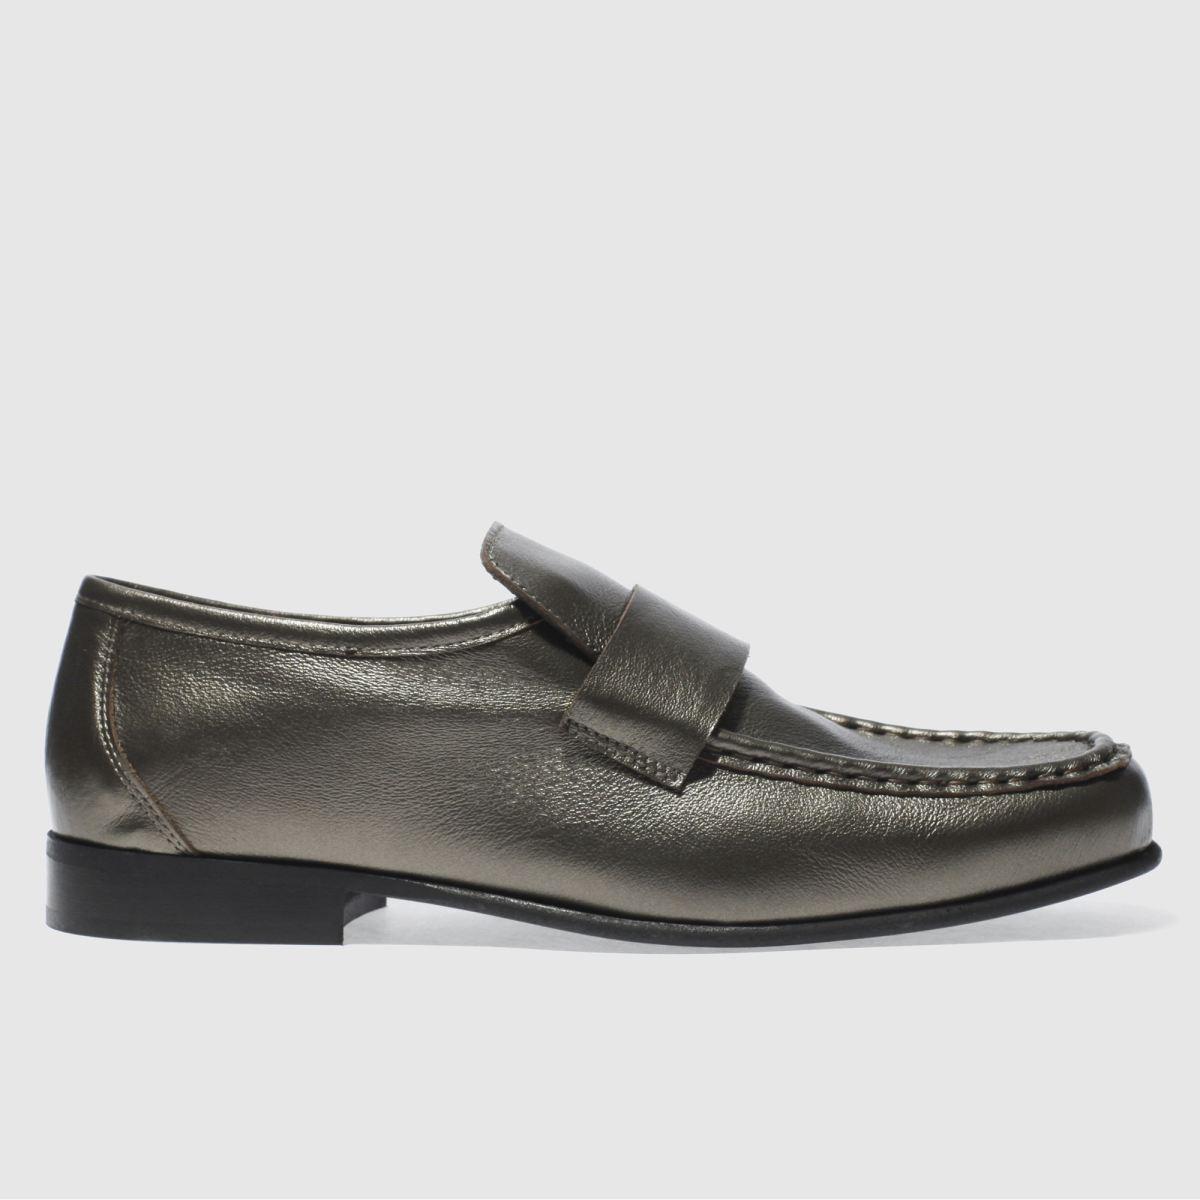 schuh taupe argent smooth shoes